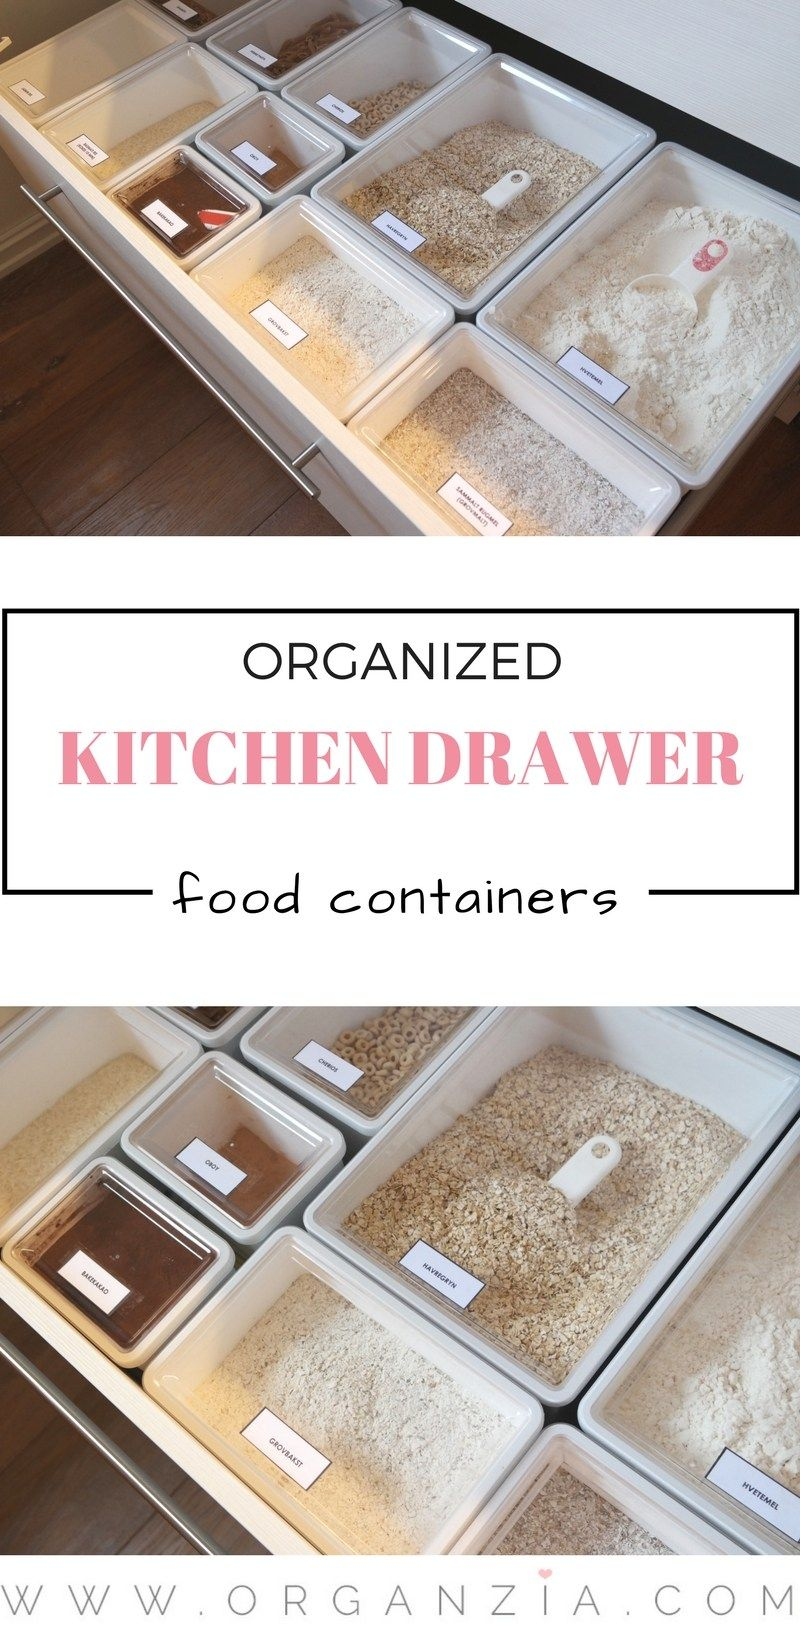 Organized kitchen drawer, finally! #kitchenstorage